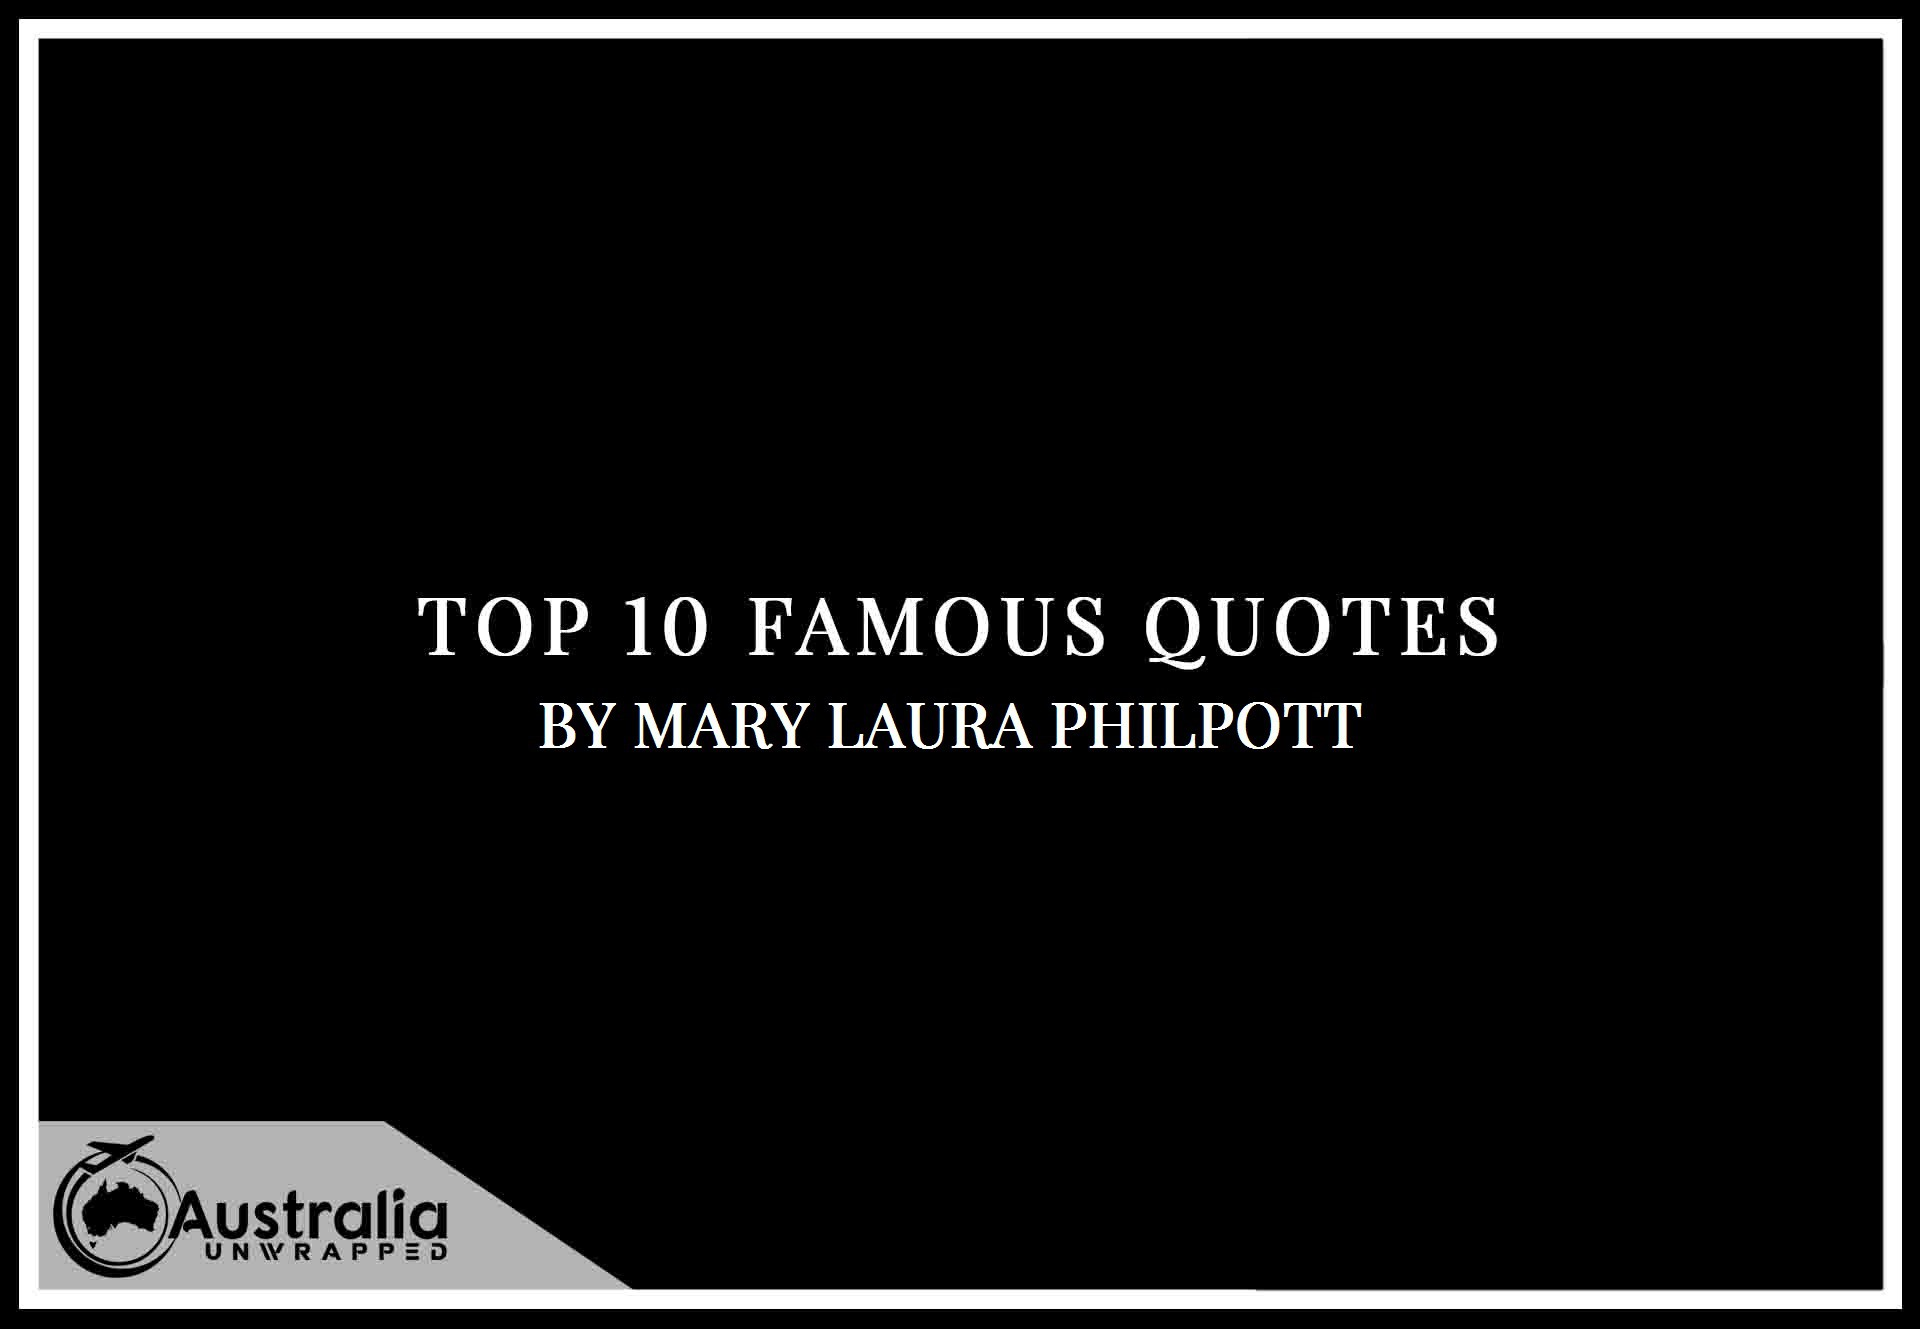 Mary Laura Philpott's Top 10 Popular and Famous Quotes